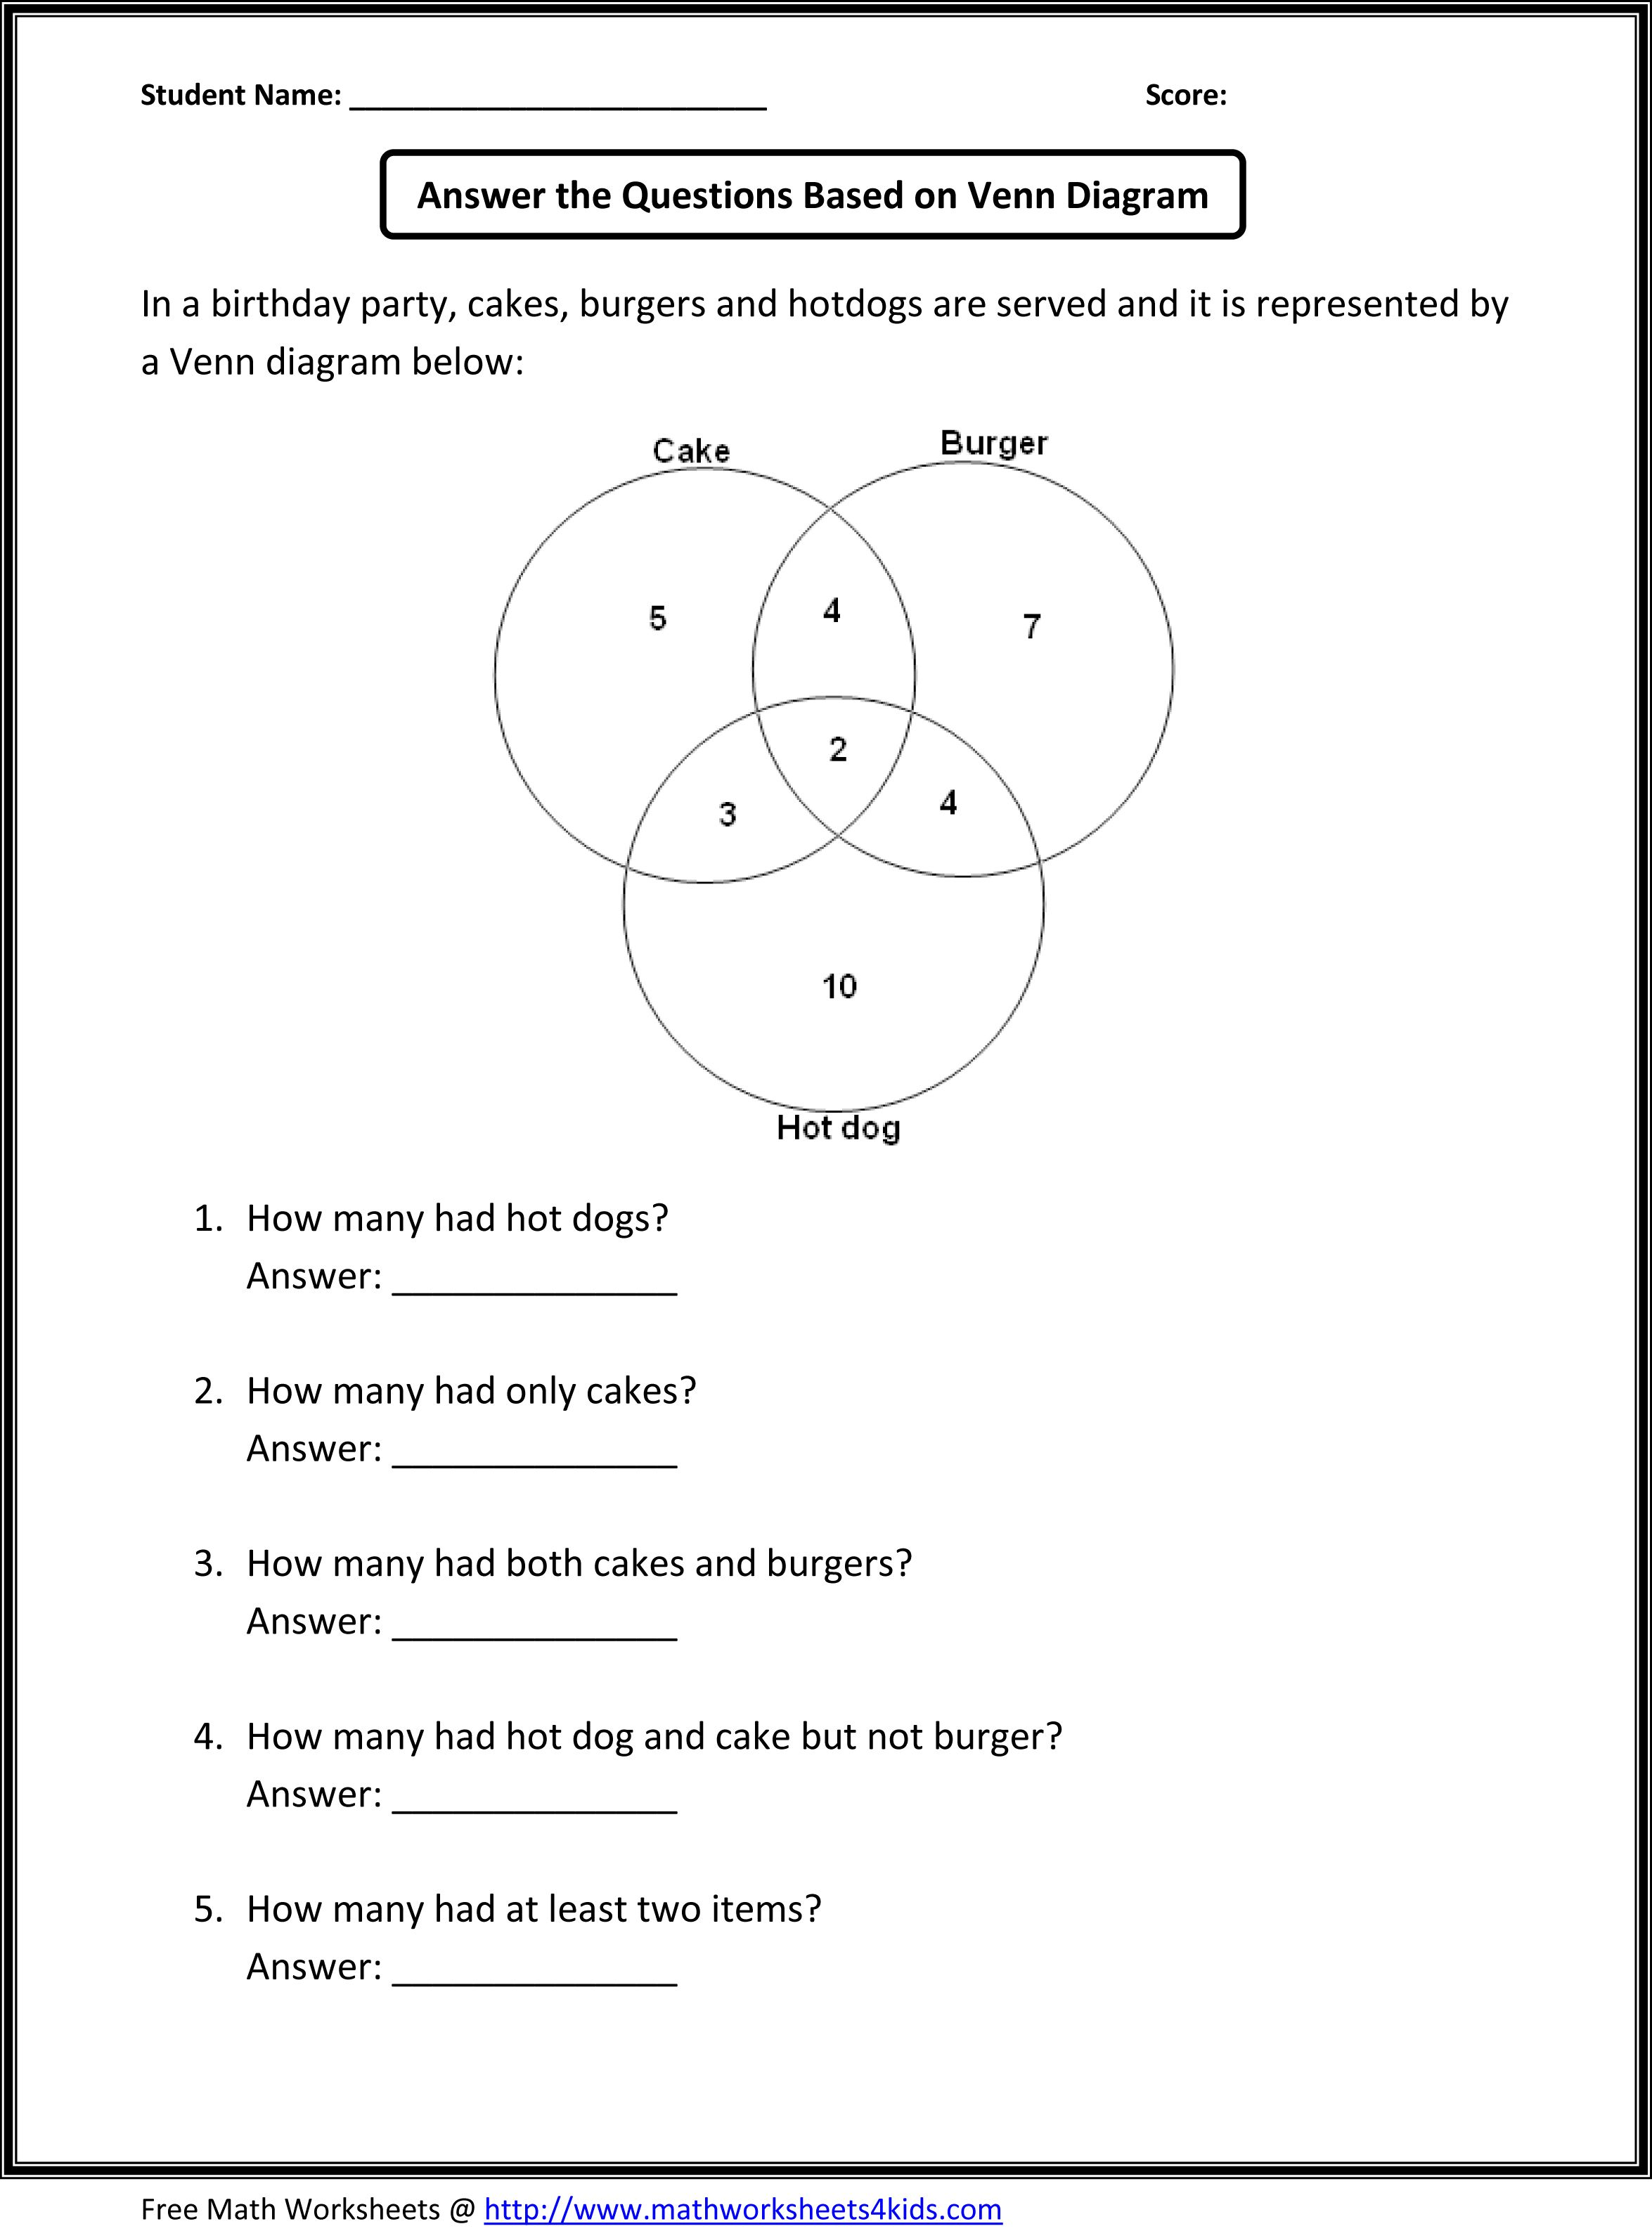 hight resolution of Fifth Grade Math Worksheets   Math worksheets